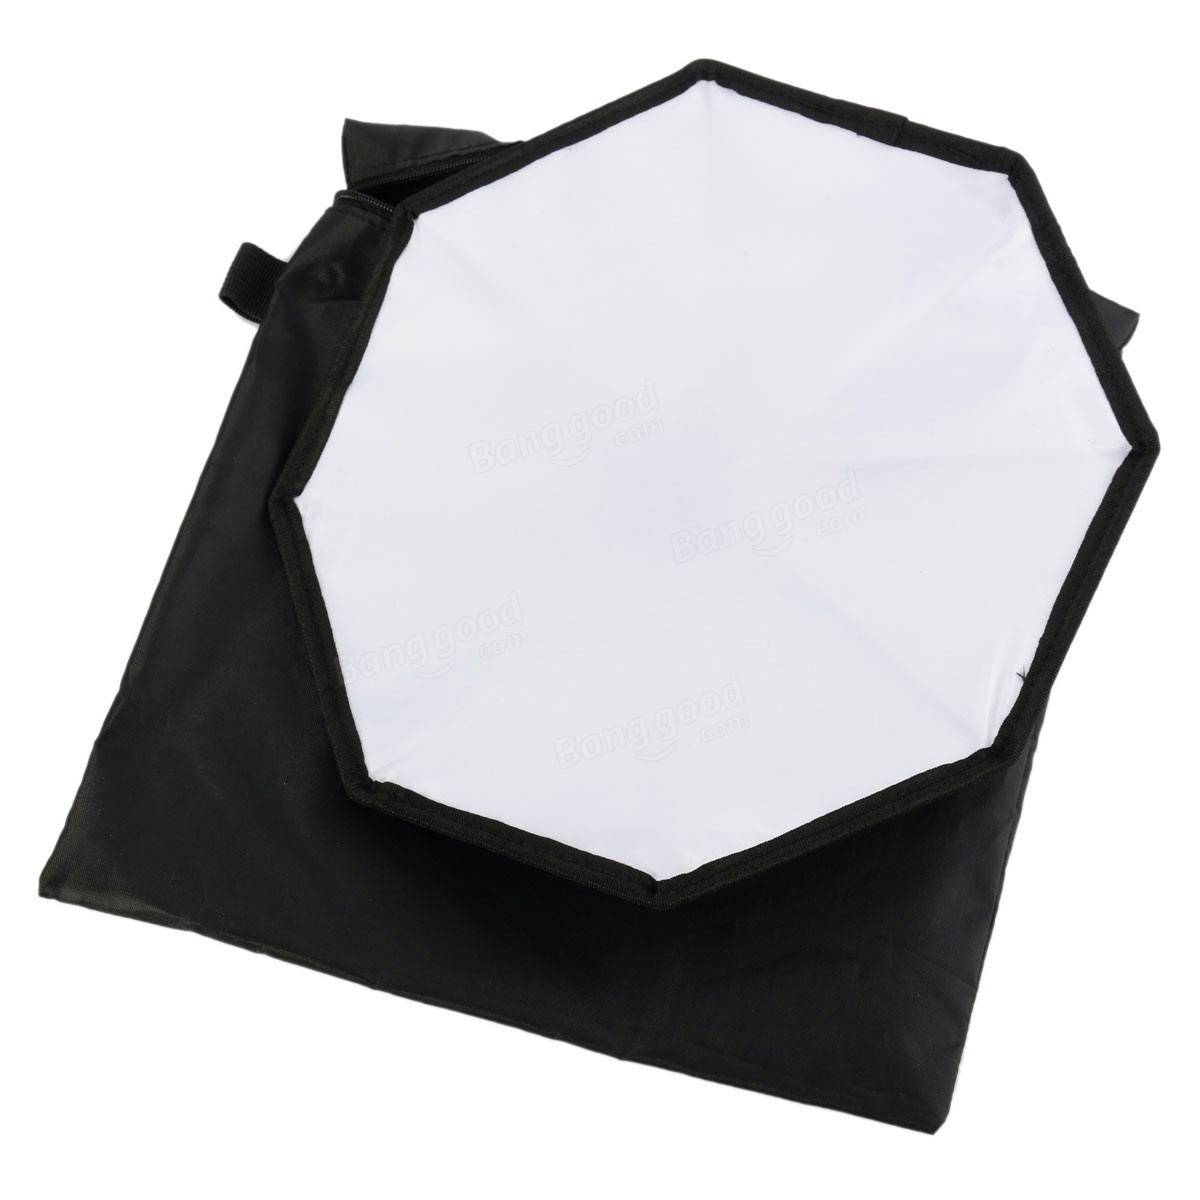 12 Inch Universal Octagon Softbox Diffusers Umbrella Flash Speedlite Cover